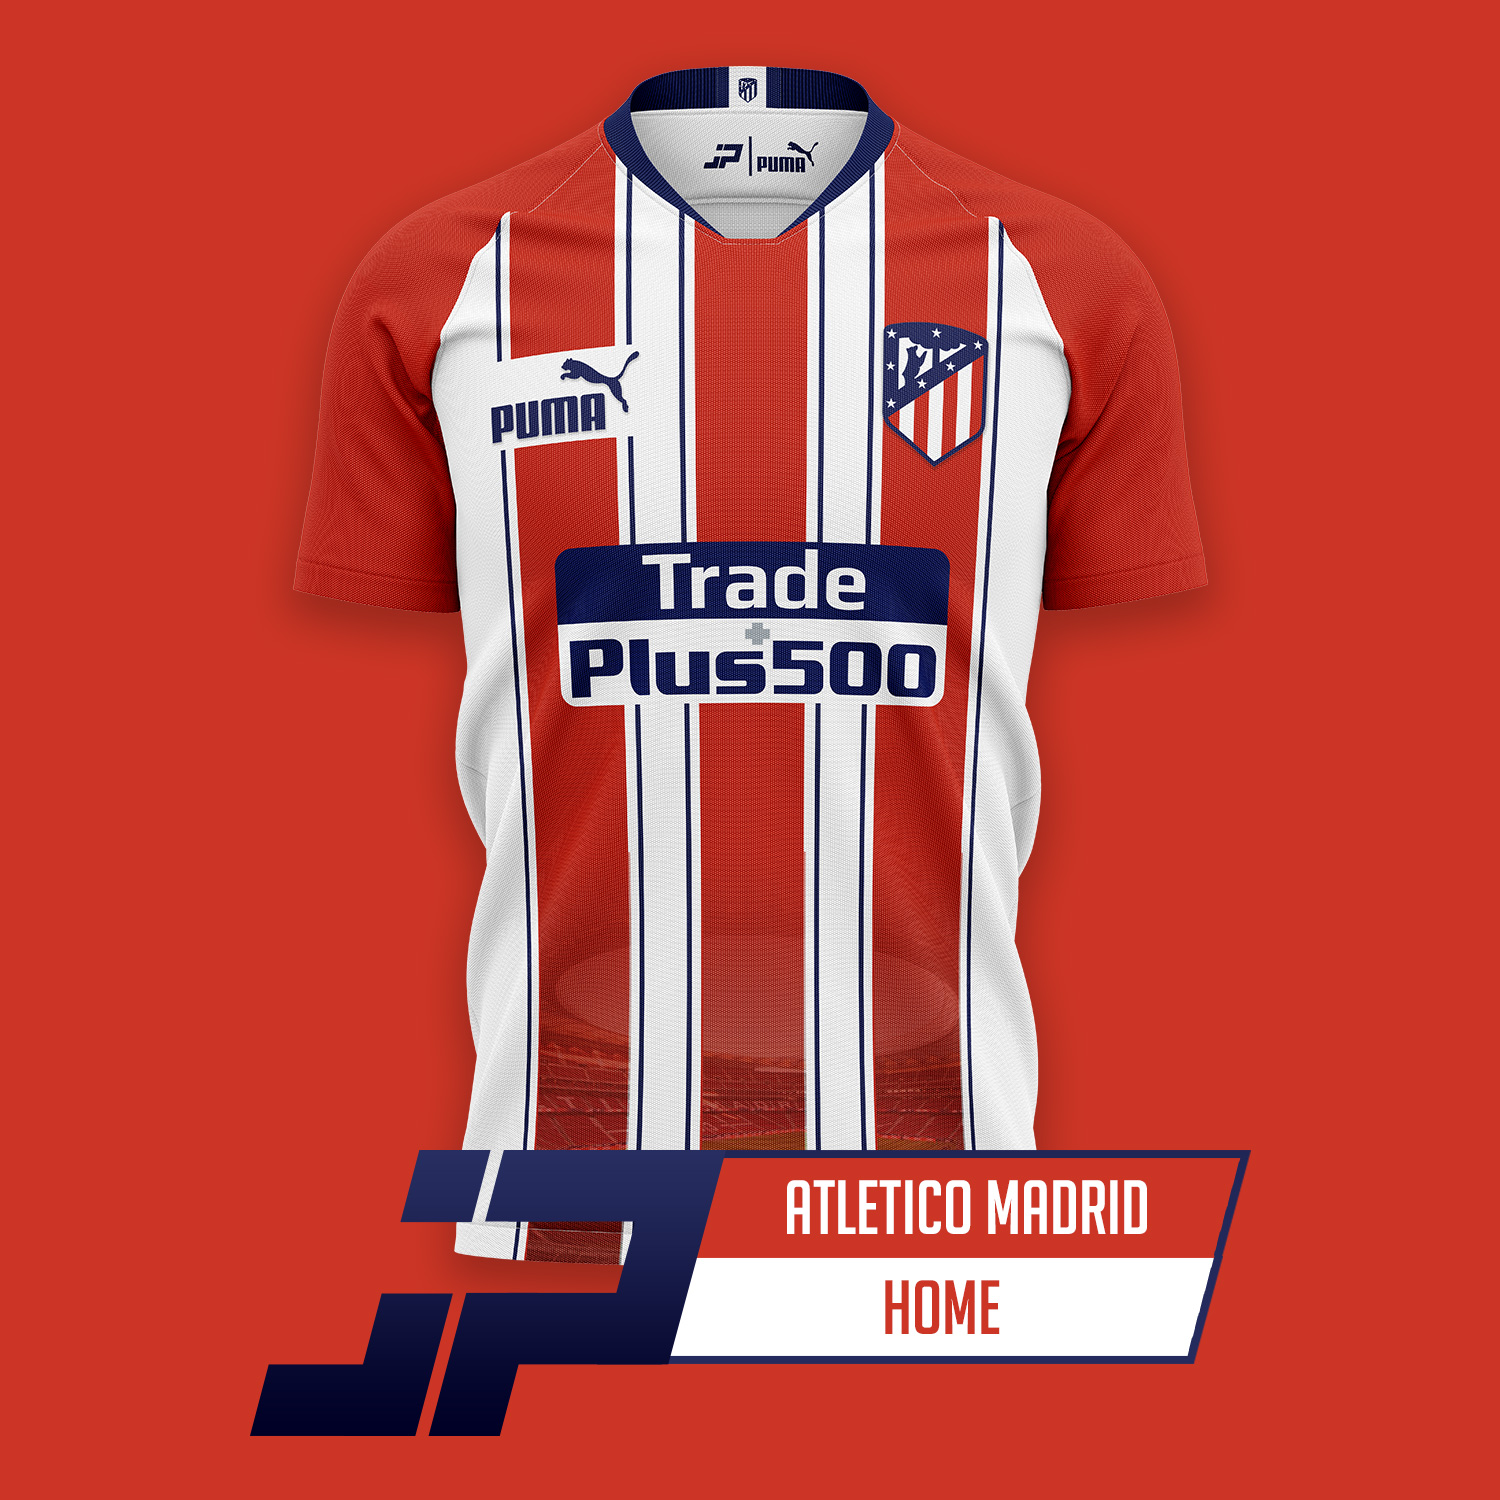 Puma Atletico Madrid 20 21 Home Away Third Kit Concepts By Jpereira Footy Headlines